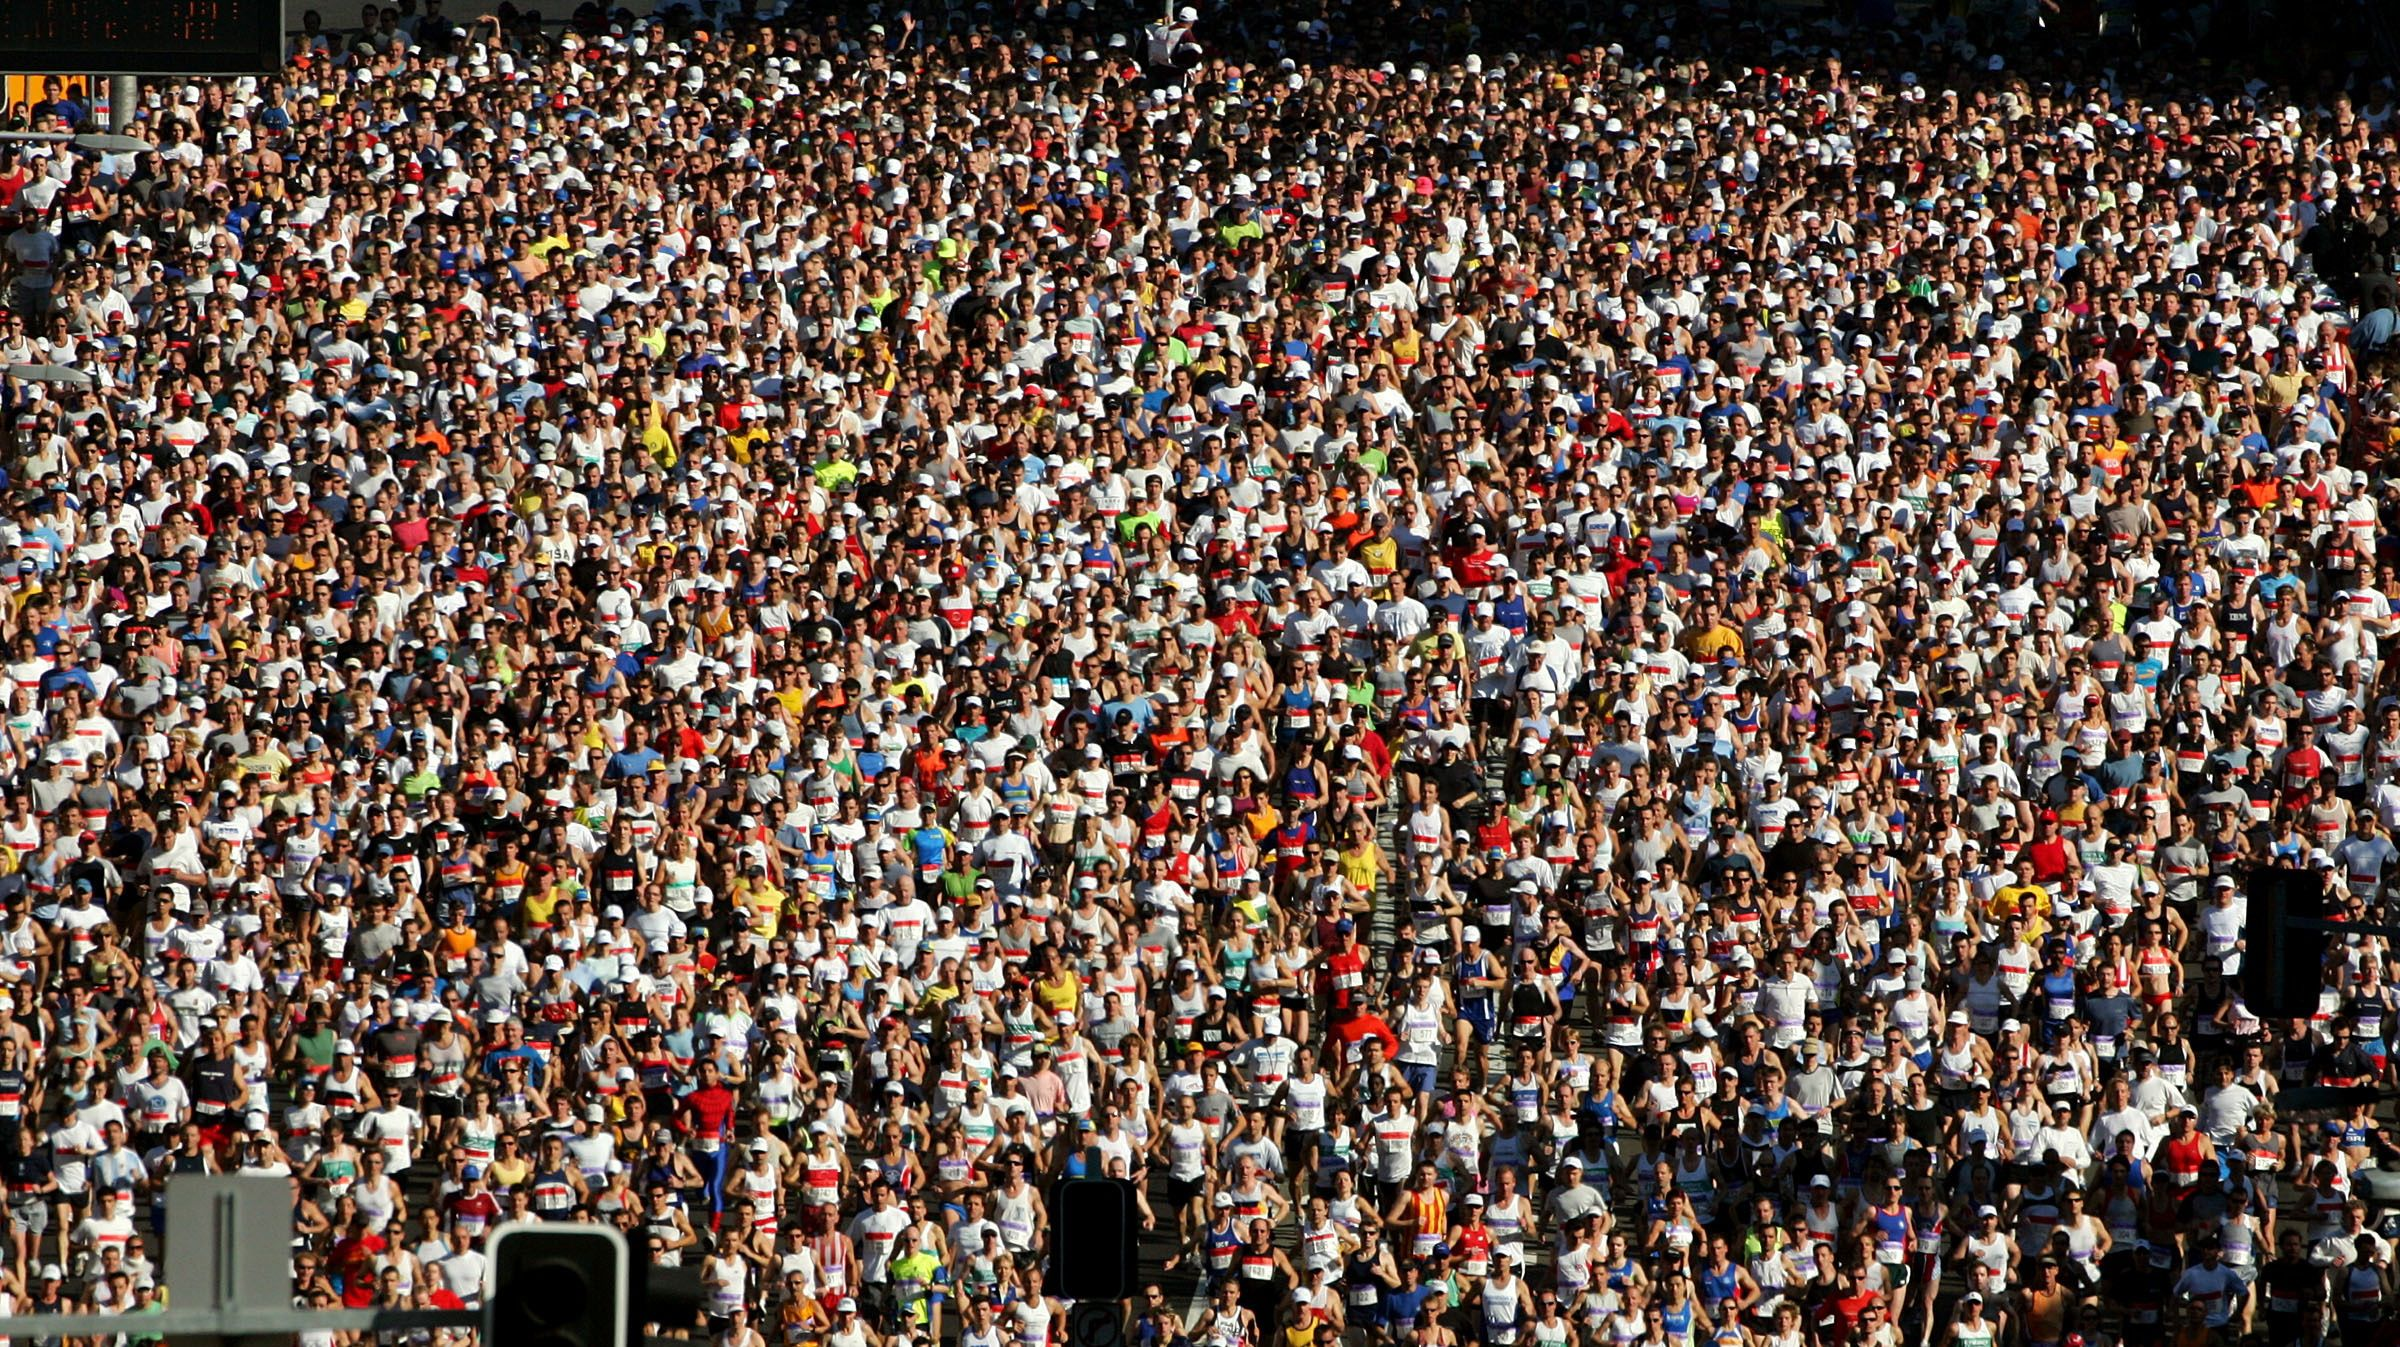 Runners start the 35th annual City to Surf fun run down Sydney's William Street August 14, 2005. More than 65,000 people started this year's race which covers a distance of 14 kilometres (8.7 miles) from the city to Bondi Beach. - RTXNP2A